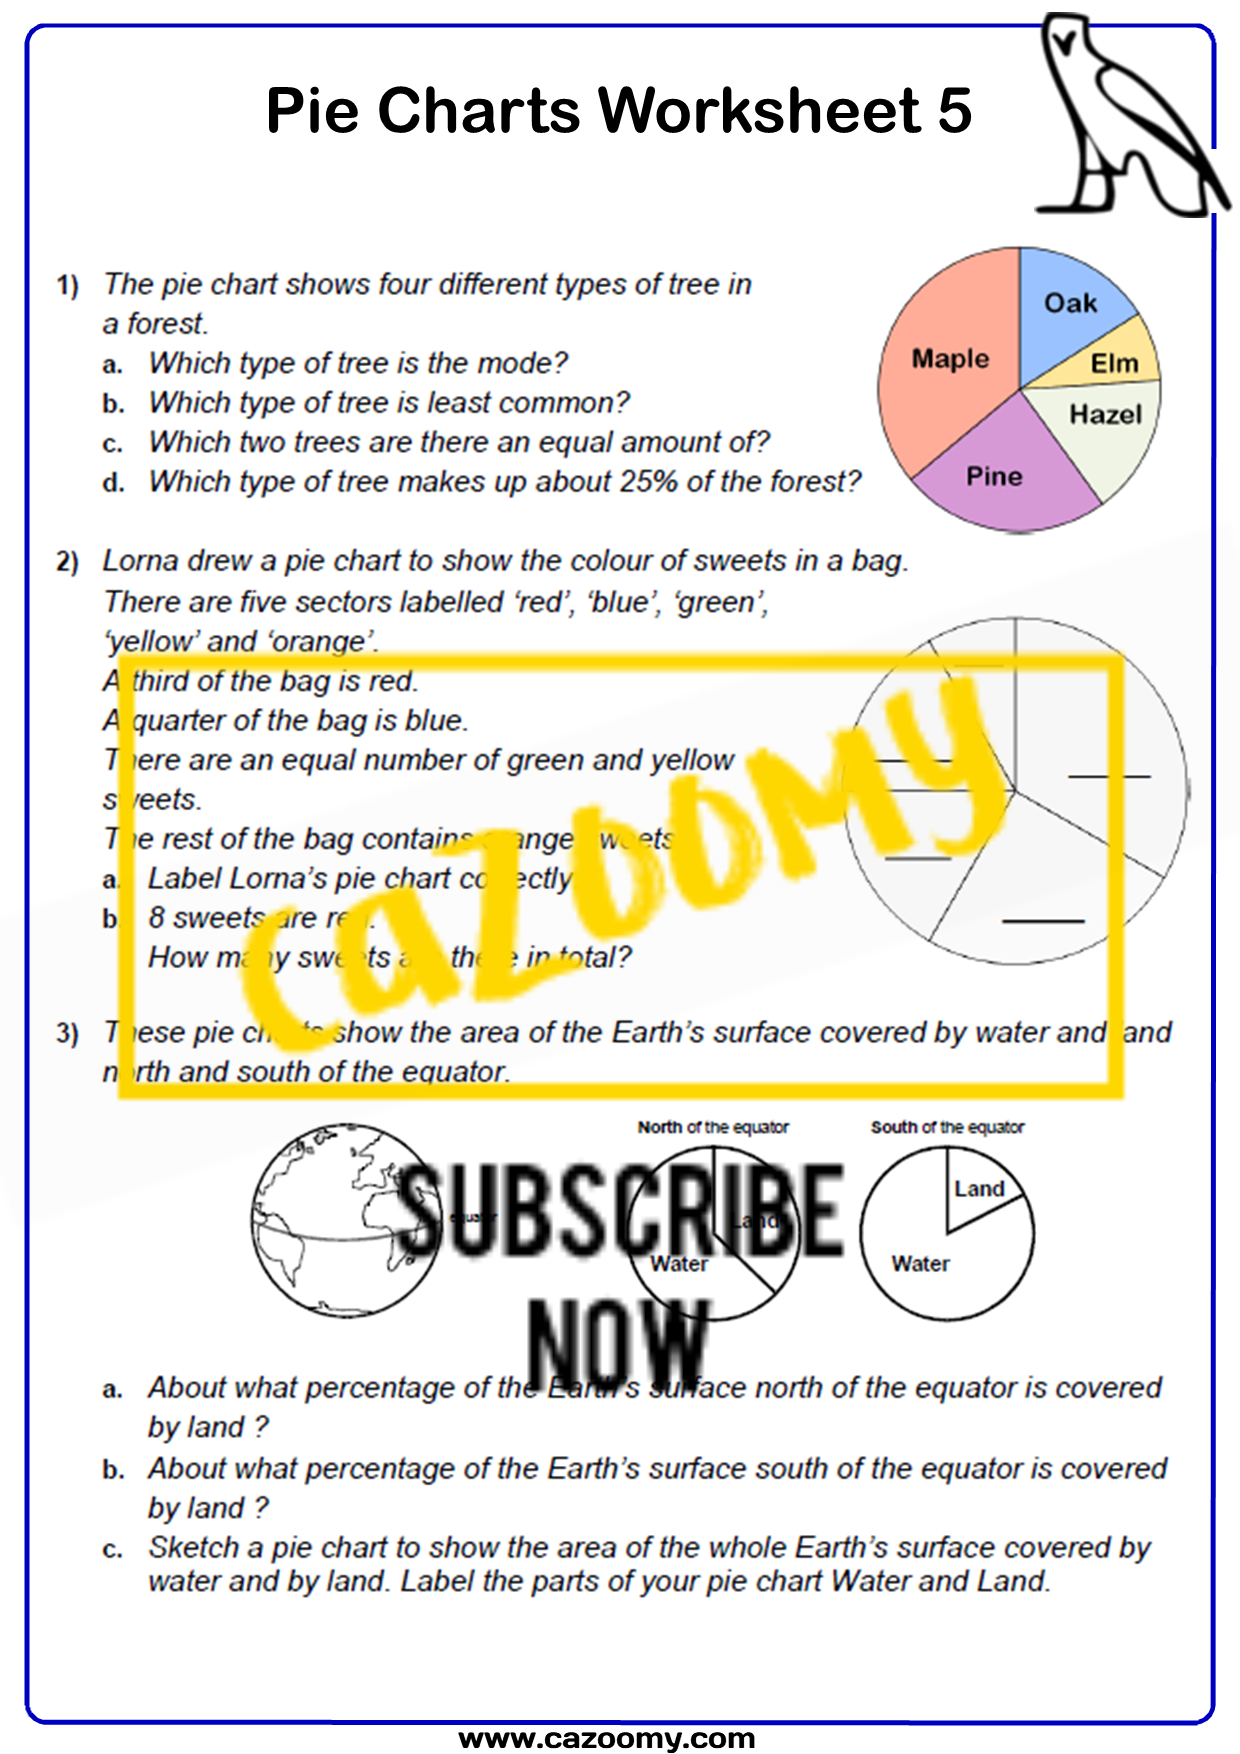 Pie Charts Worksheet 5